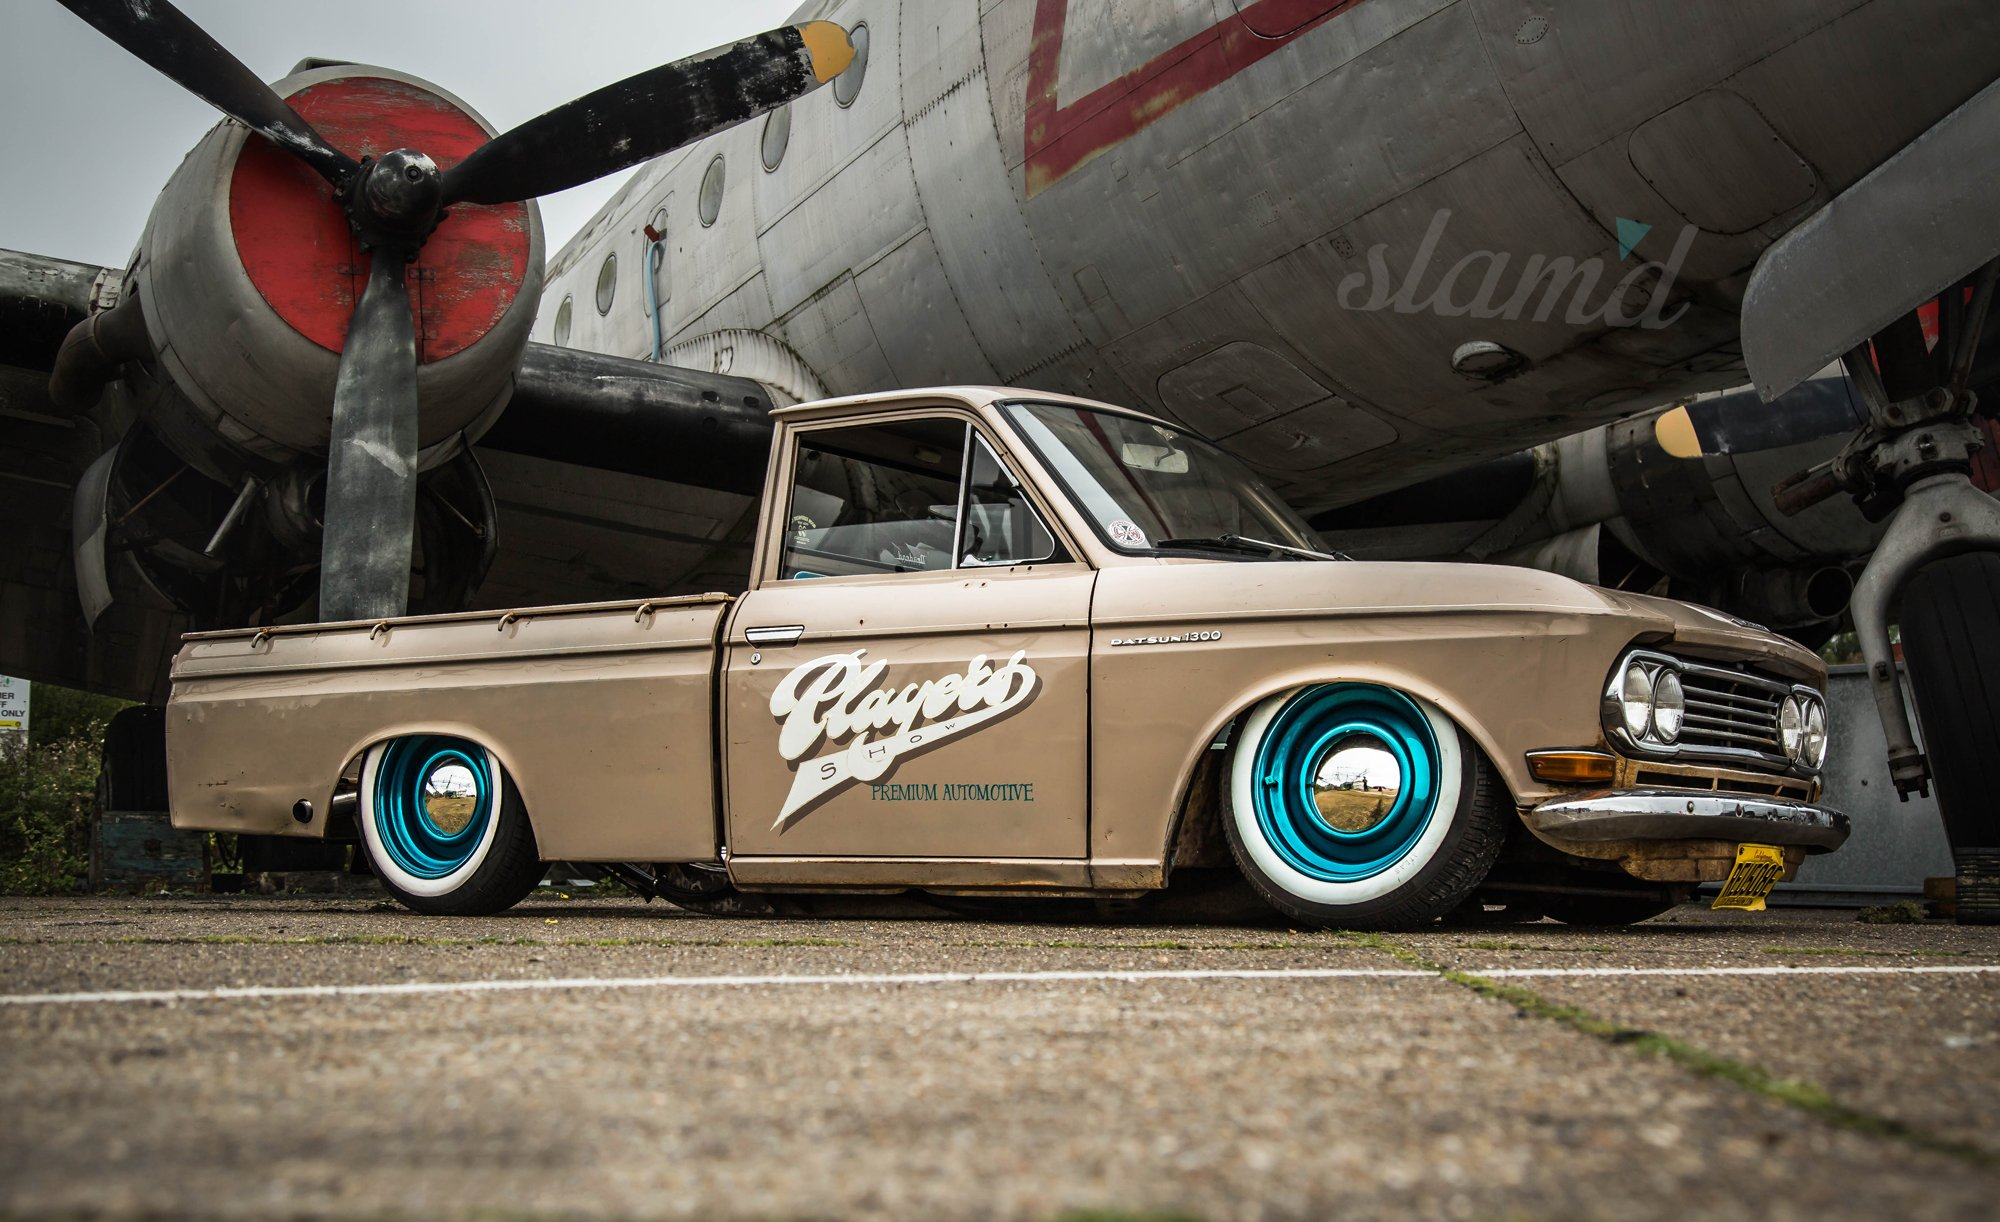 Custom Truck Wheels >> 1966 Datsun 520 pickup lowrider truck nissan custom classic b wallpaper | 2000x1222 | 715252 ...